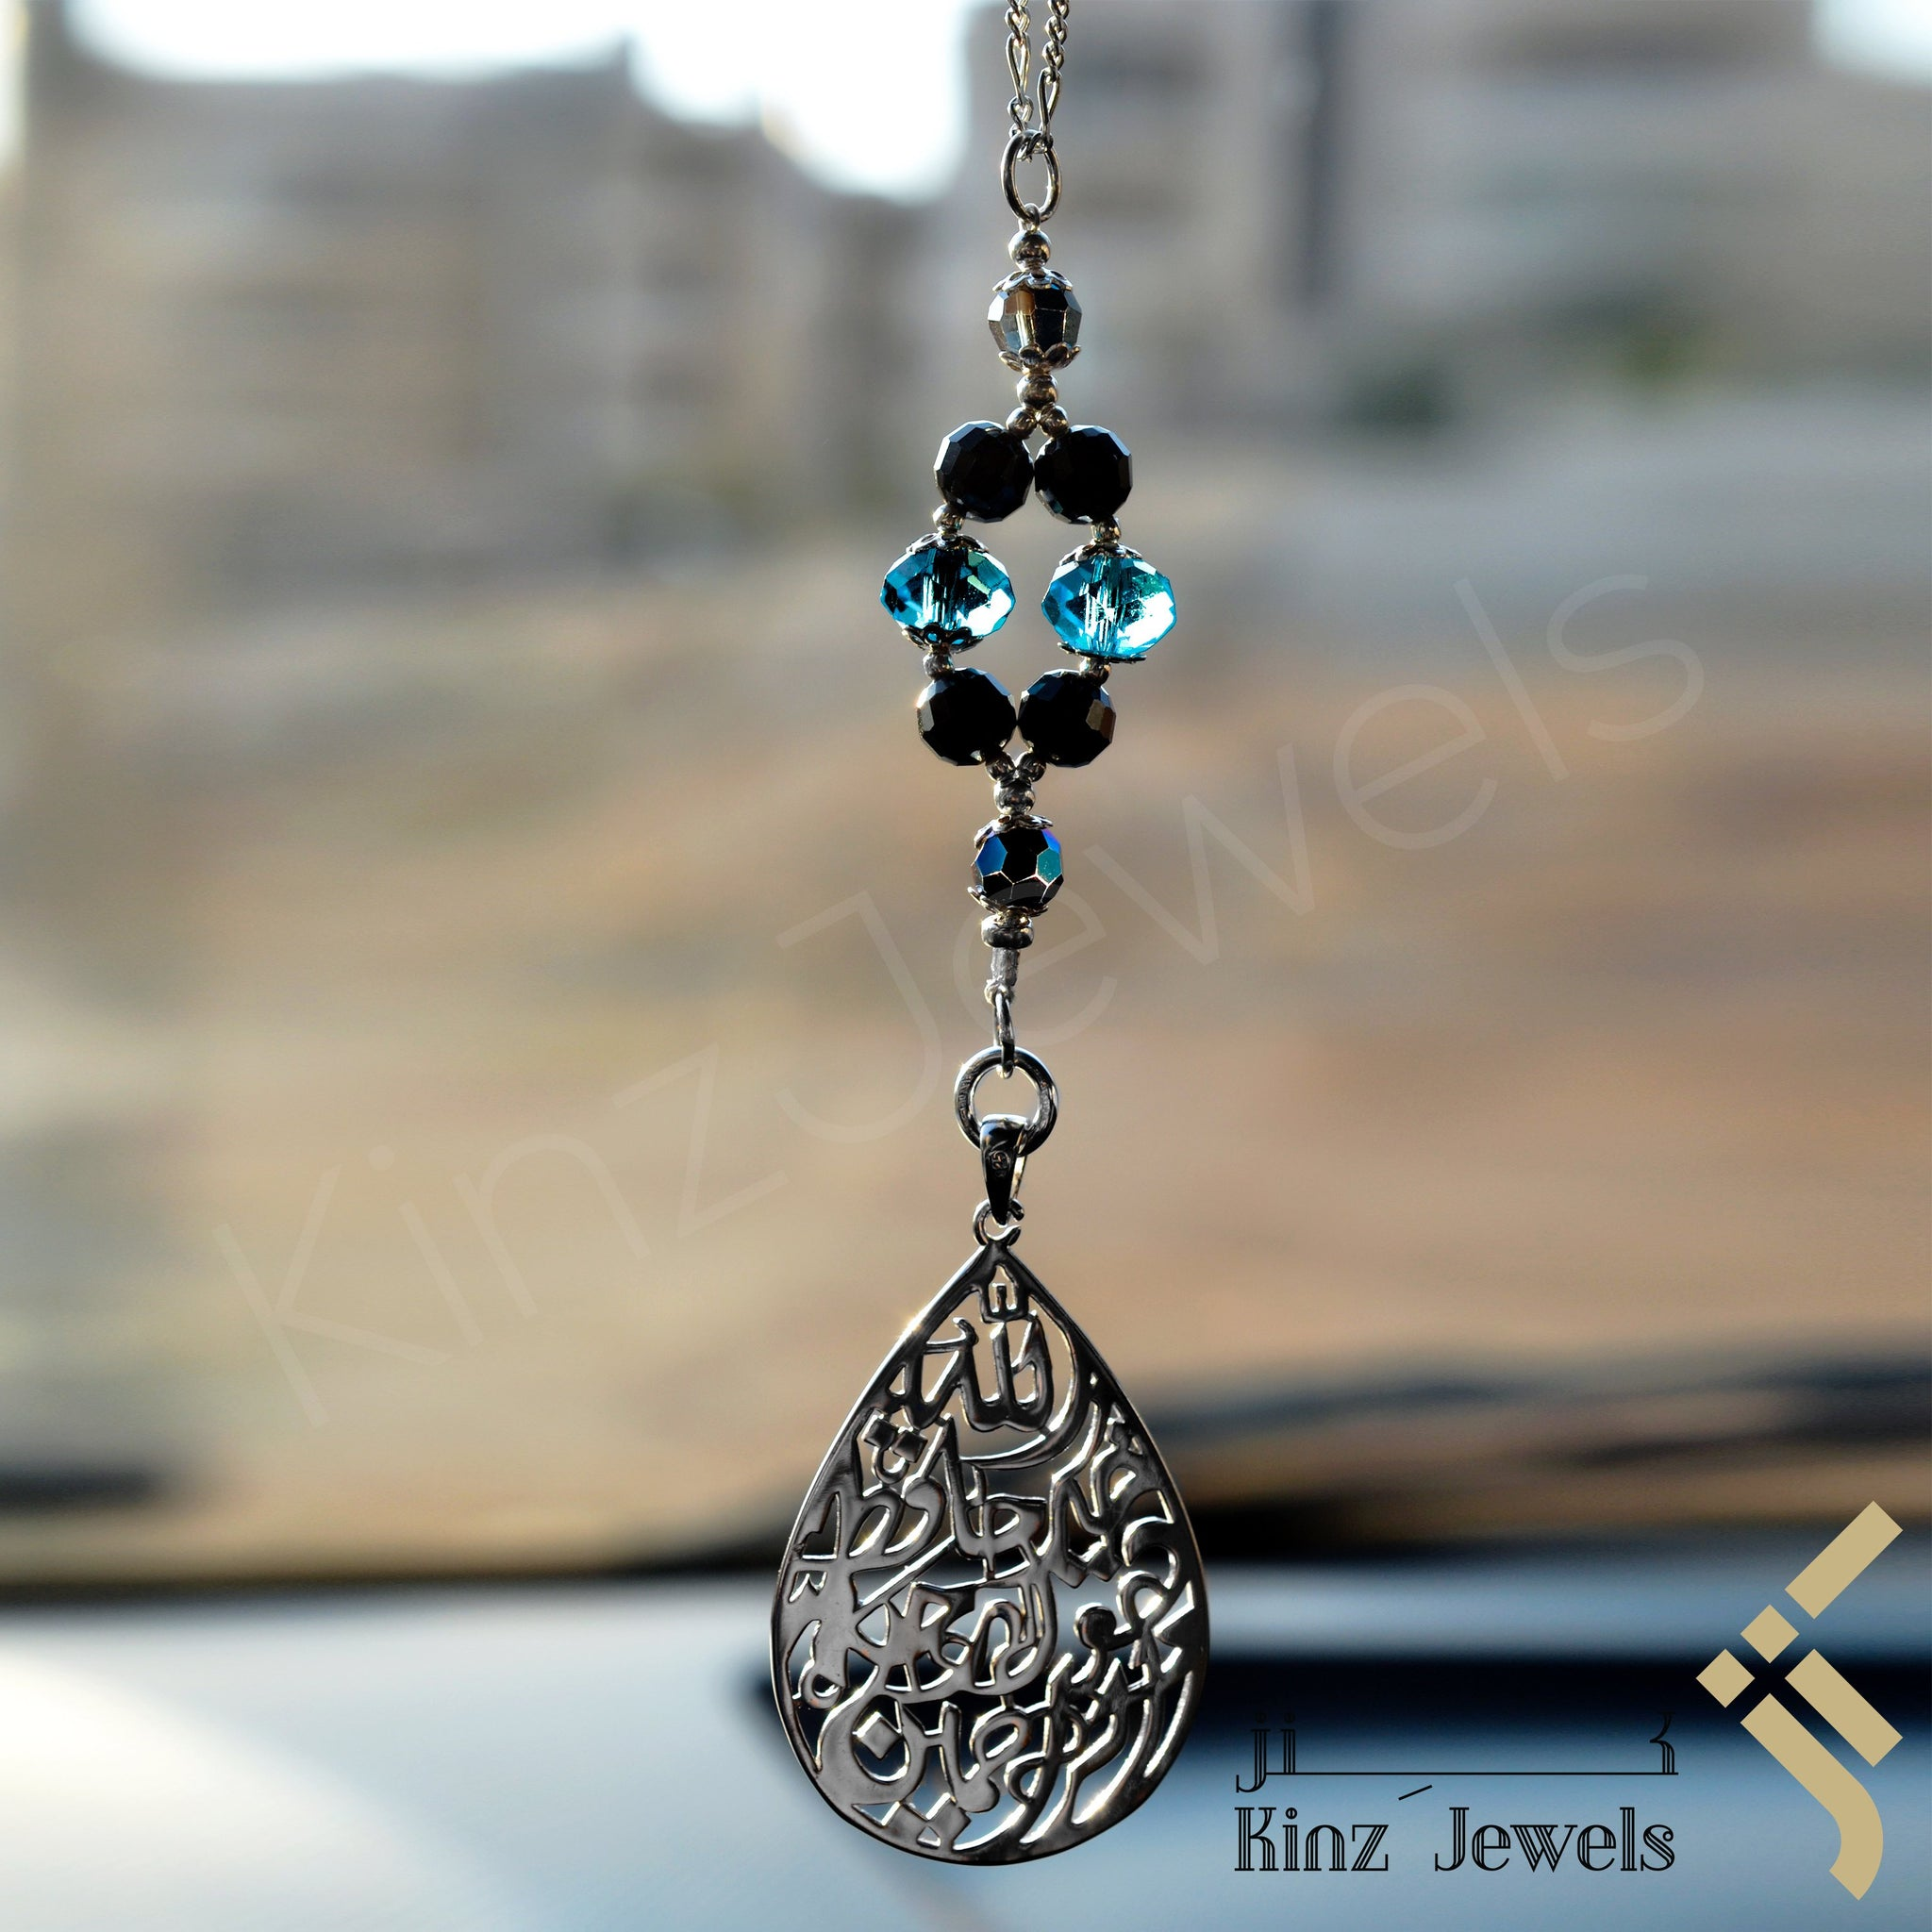 kinzjewels - Kinz Car Mirror Hanging or Keychain Black & Blue - But Allah Is The Best Keeper